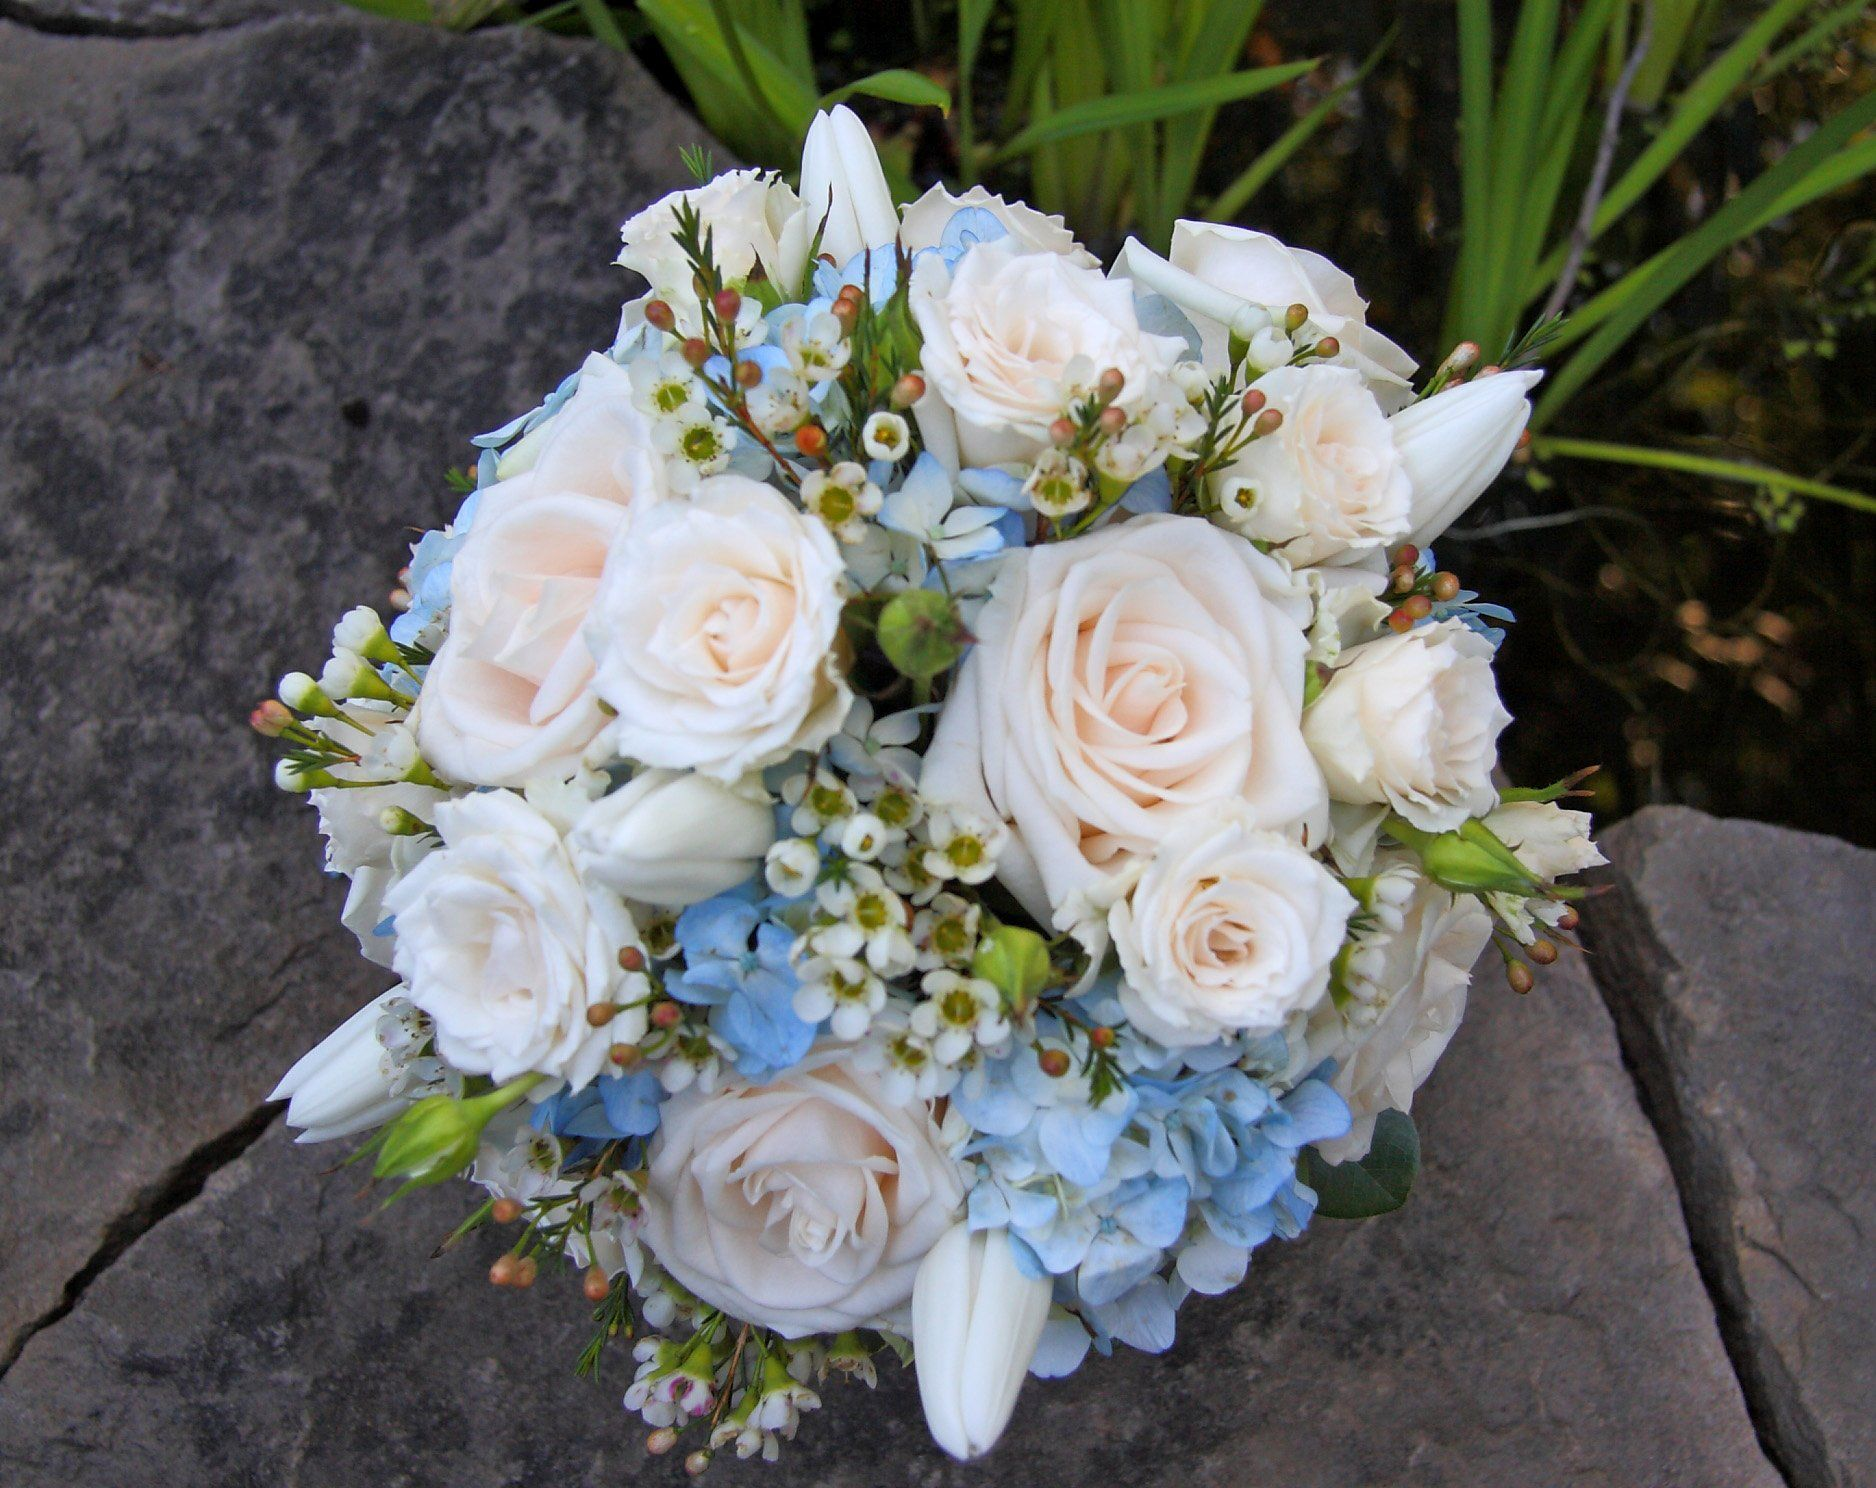 blue and white wedding bouquets garden rose wax flower and blue hydrangea bouquet - Garden Rose And Hydrangea Bouquet